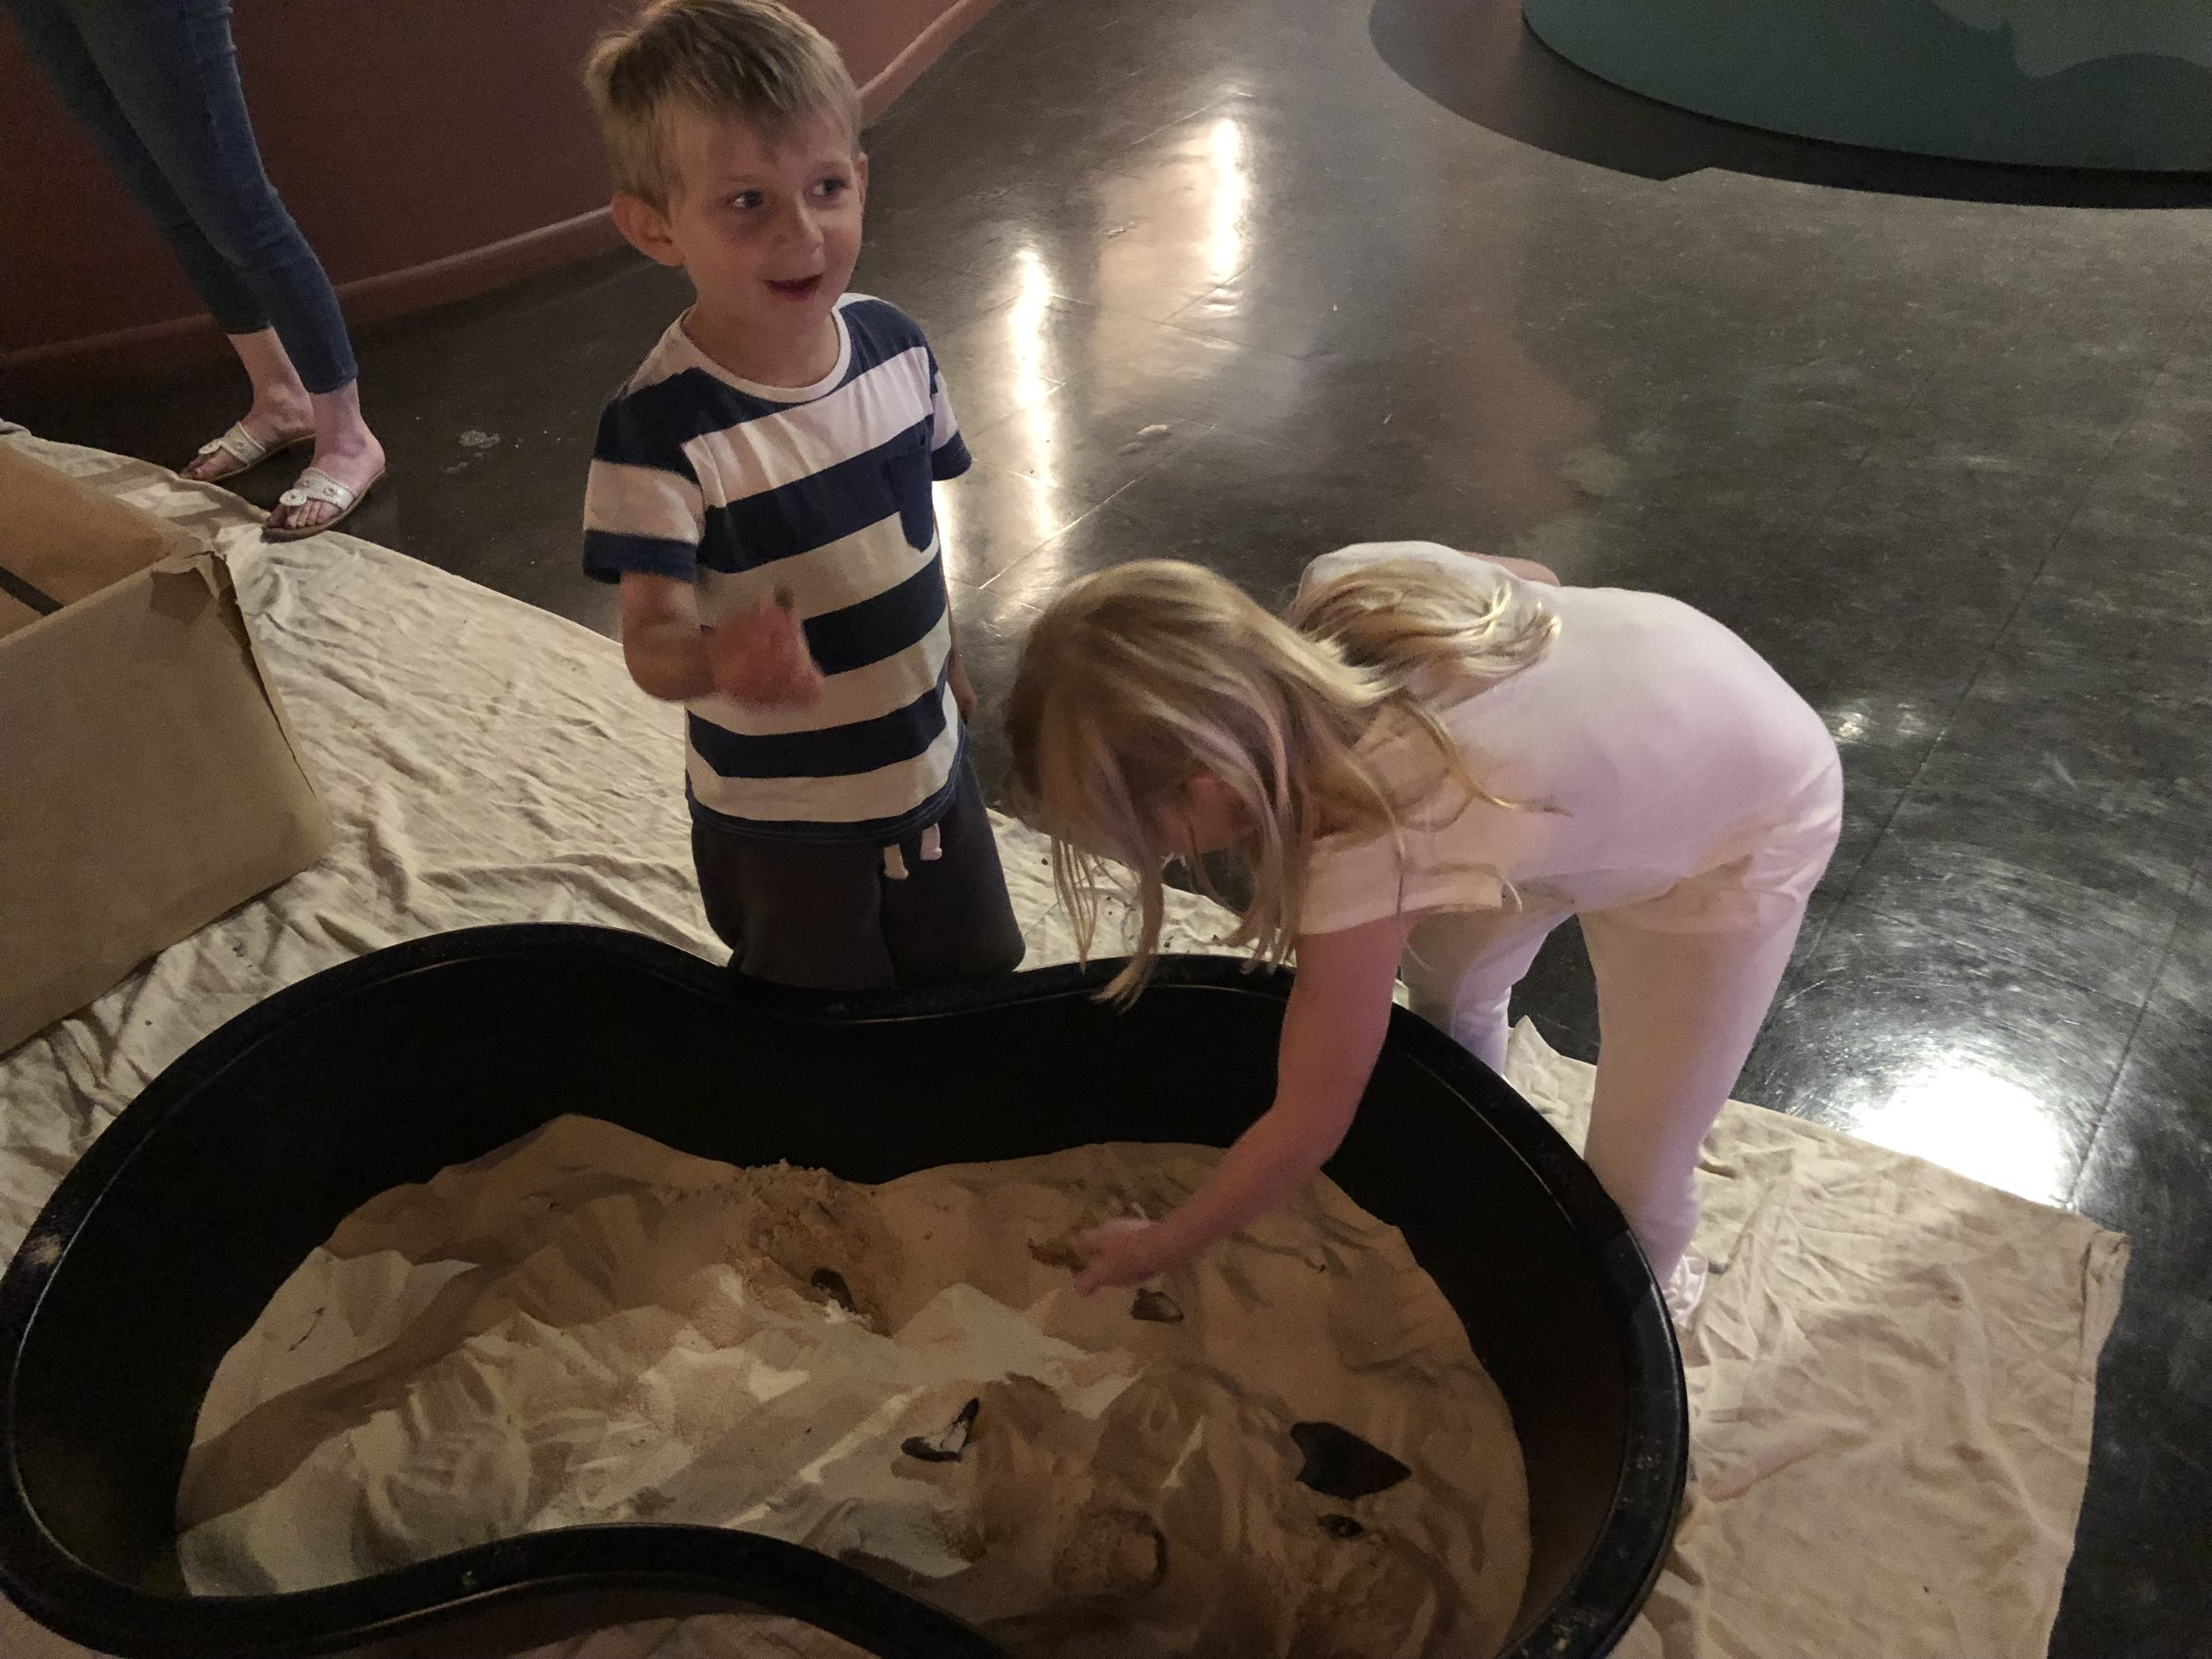 Digging for fossils in the sand.